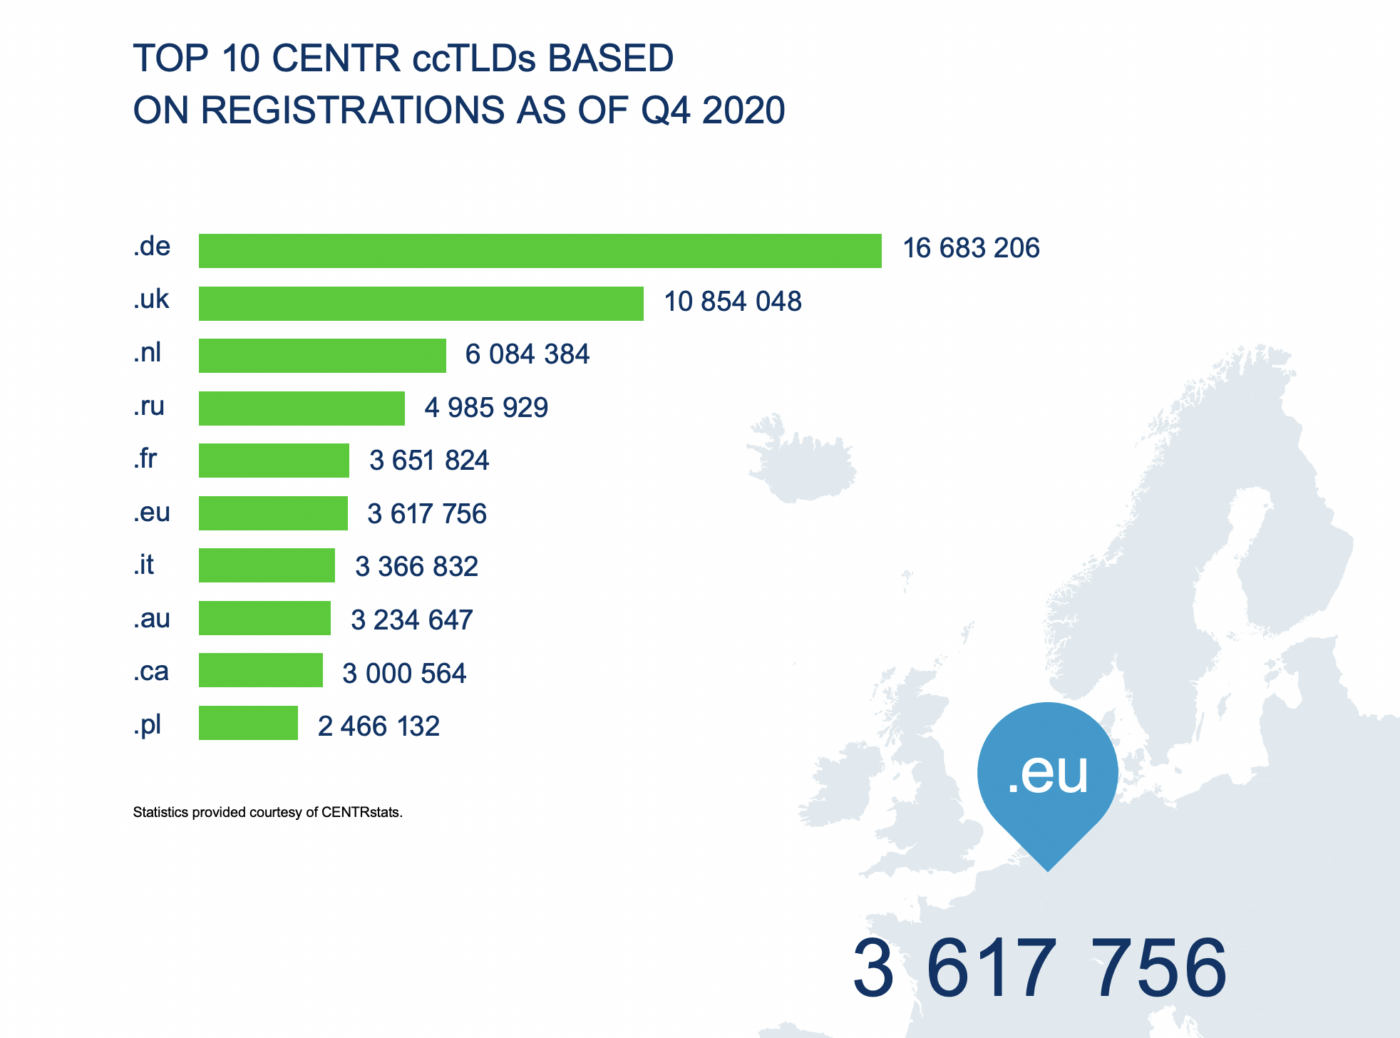 .eu is the 7th most popular ccTLD domain